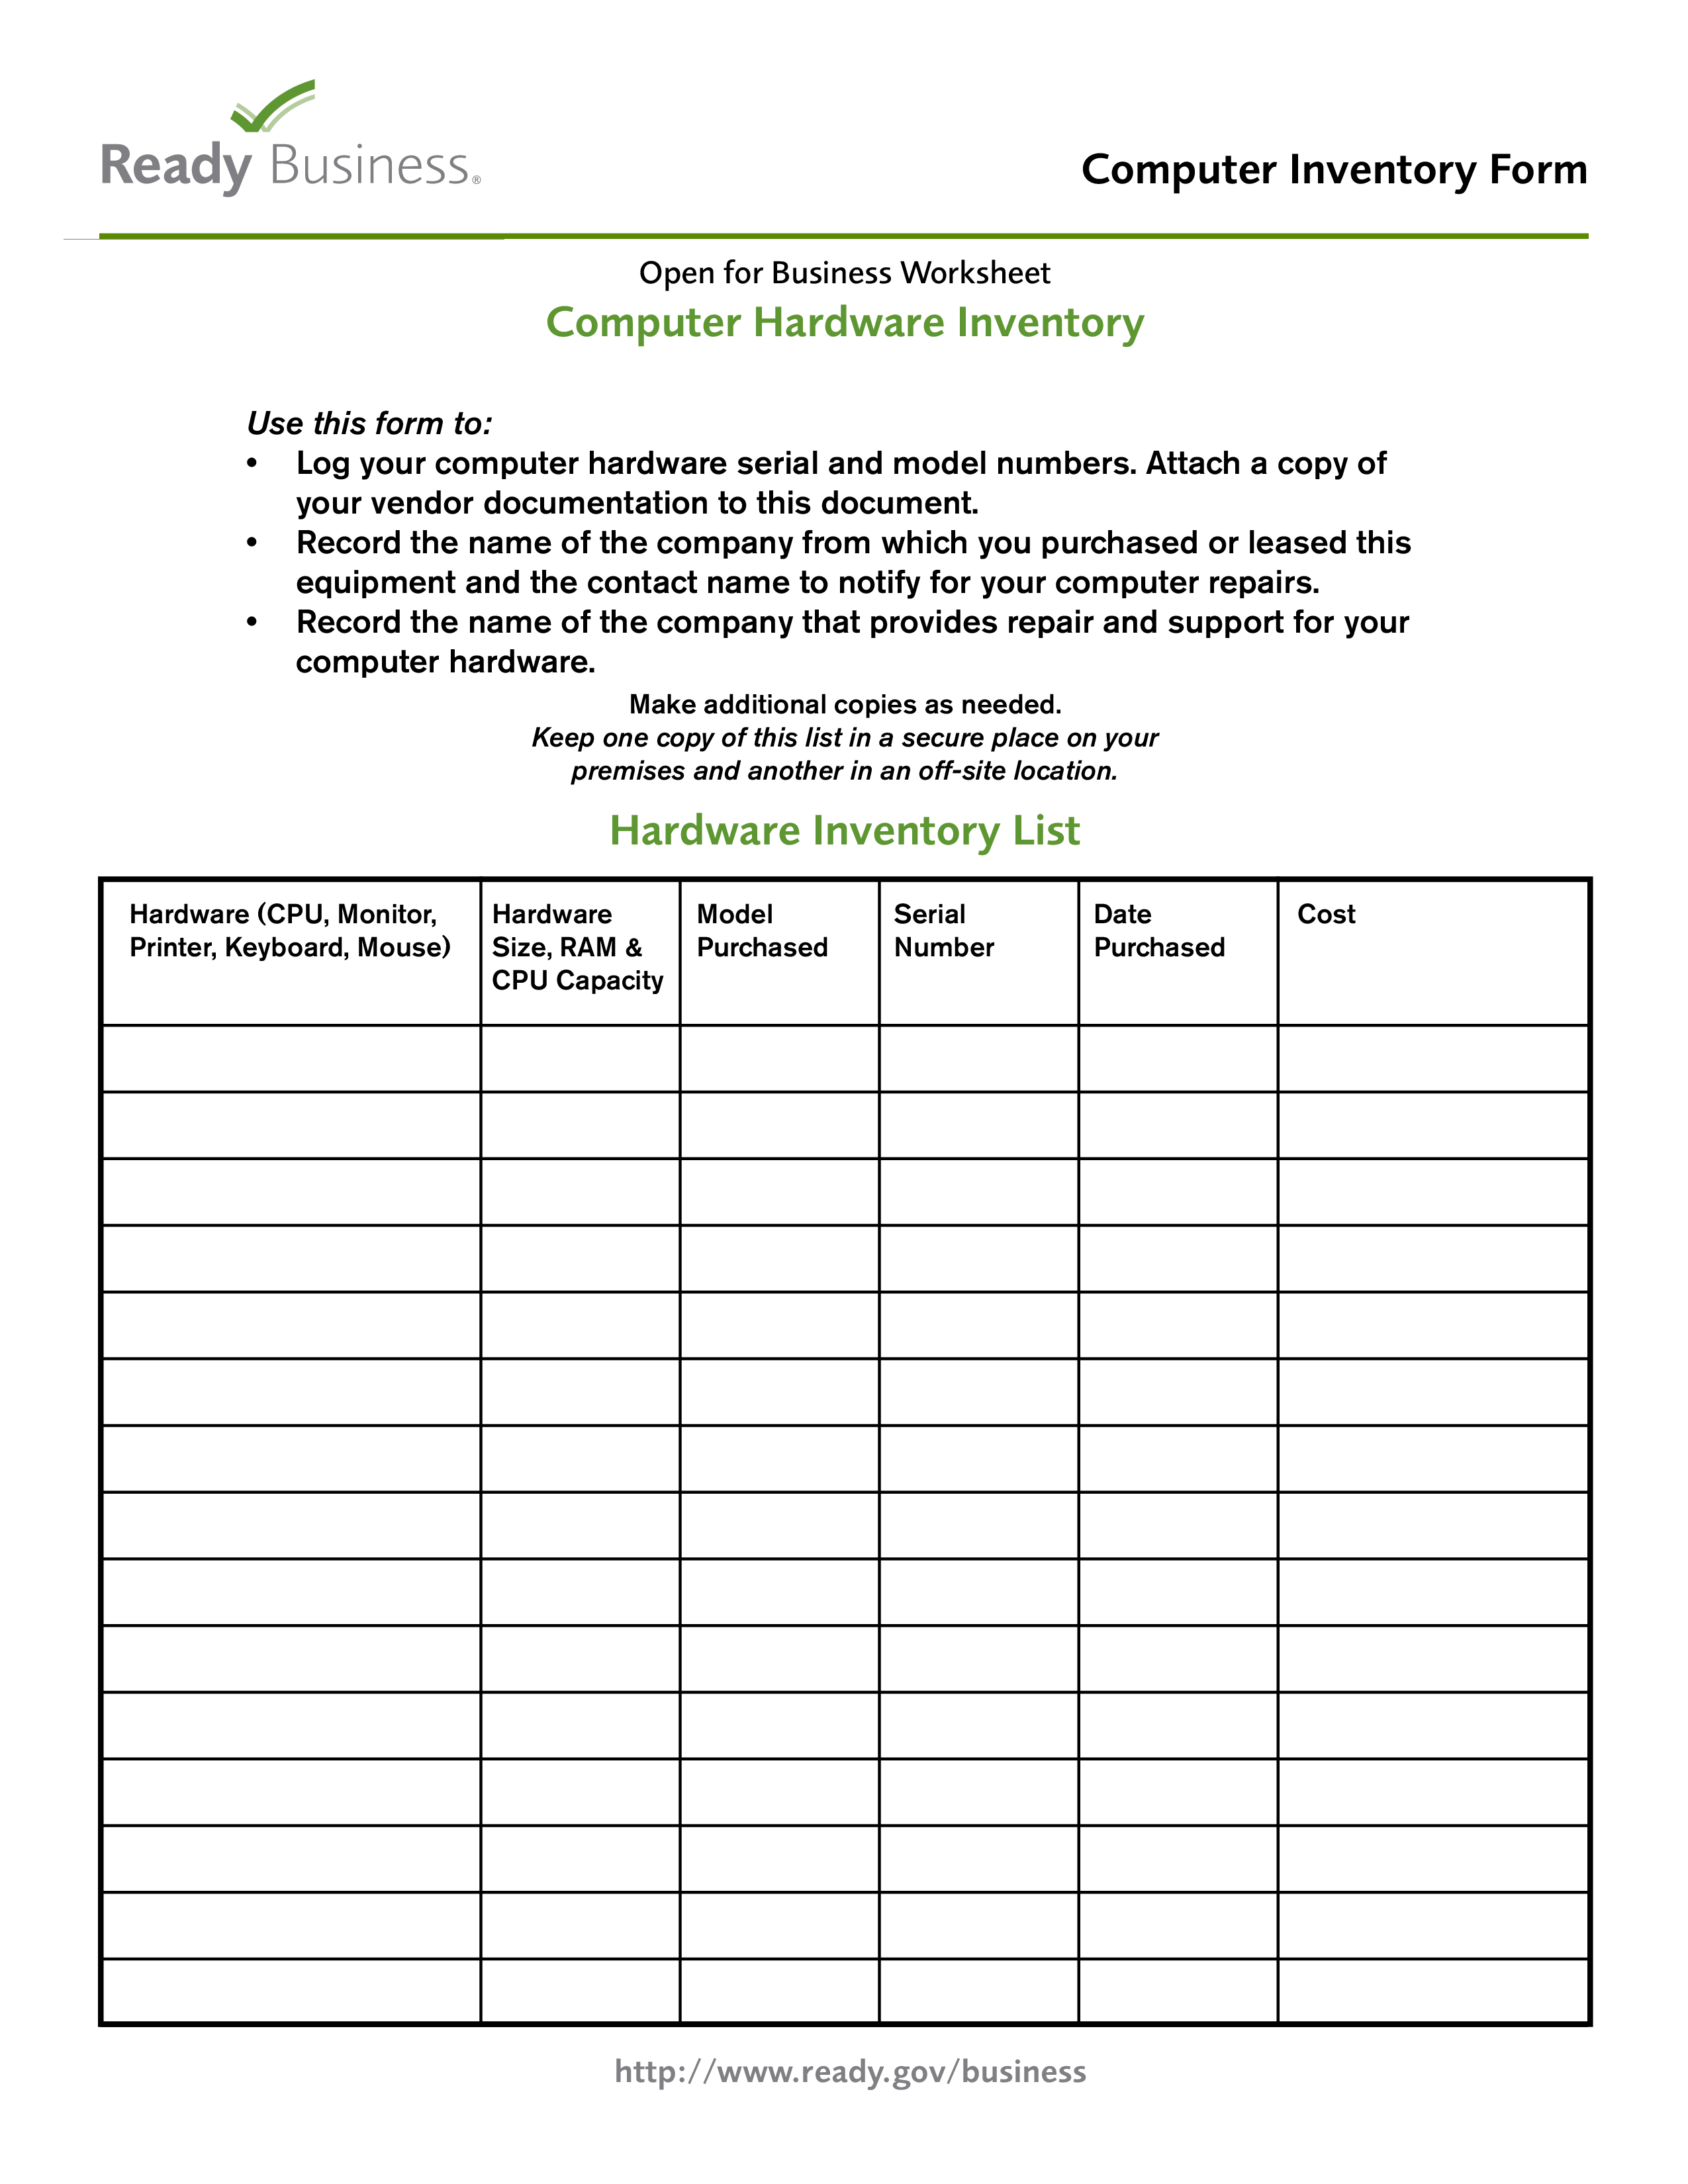 Computer Hardware Inventory Form Main Image Download Template